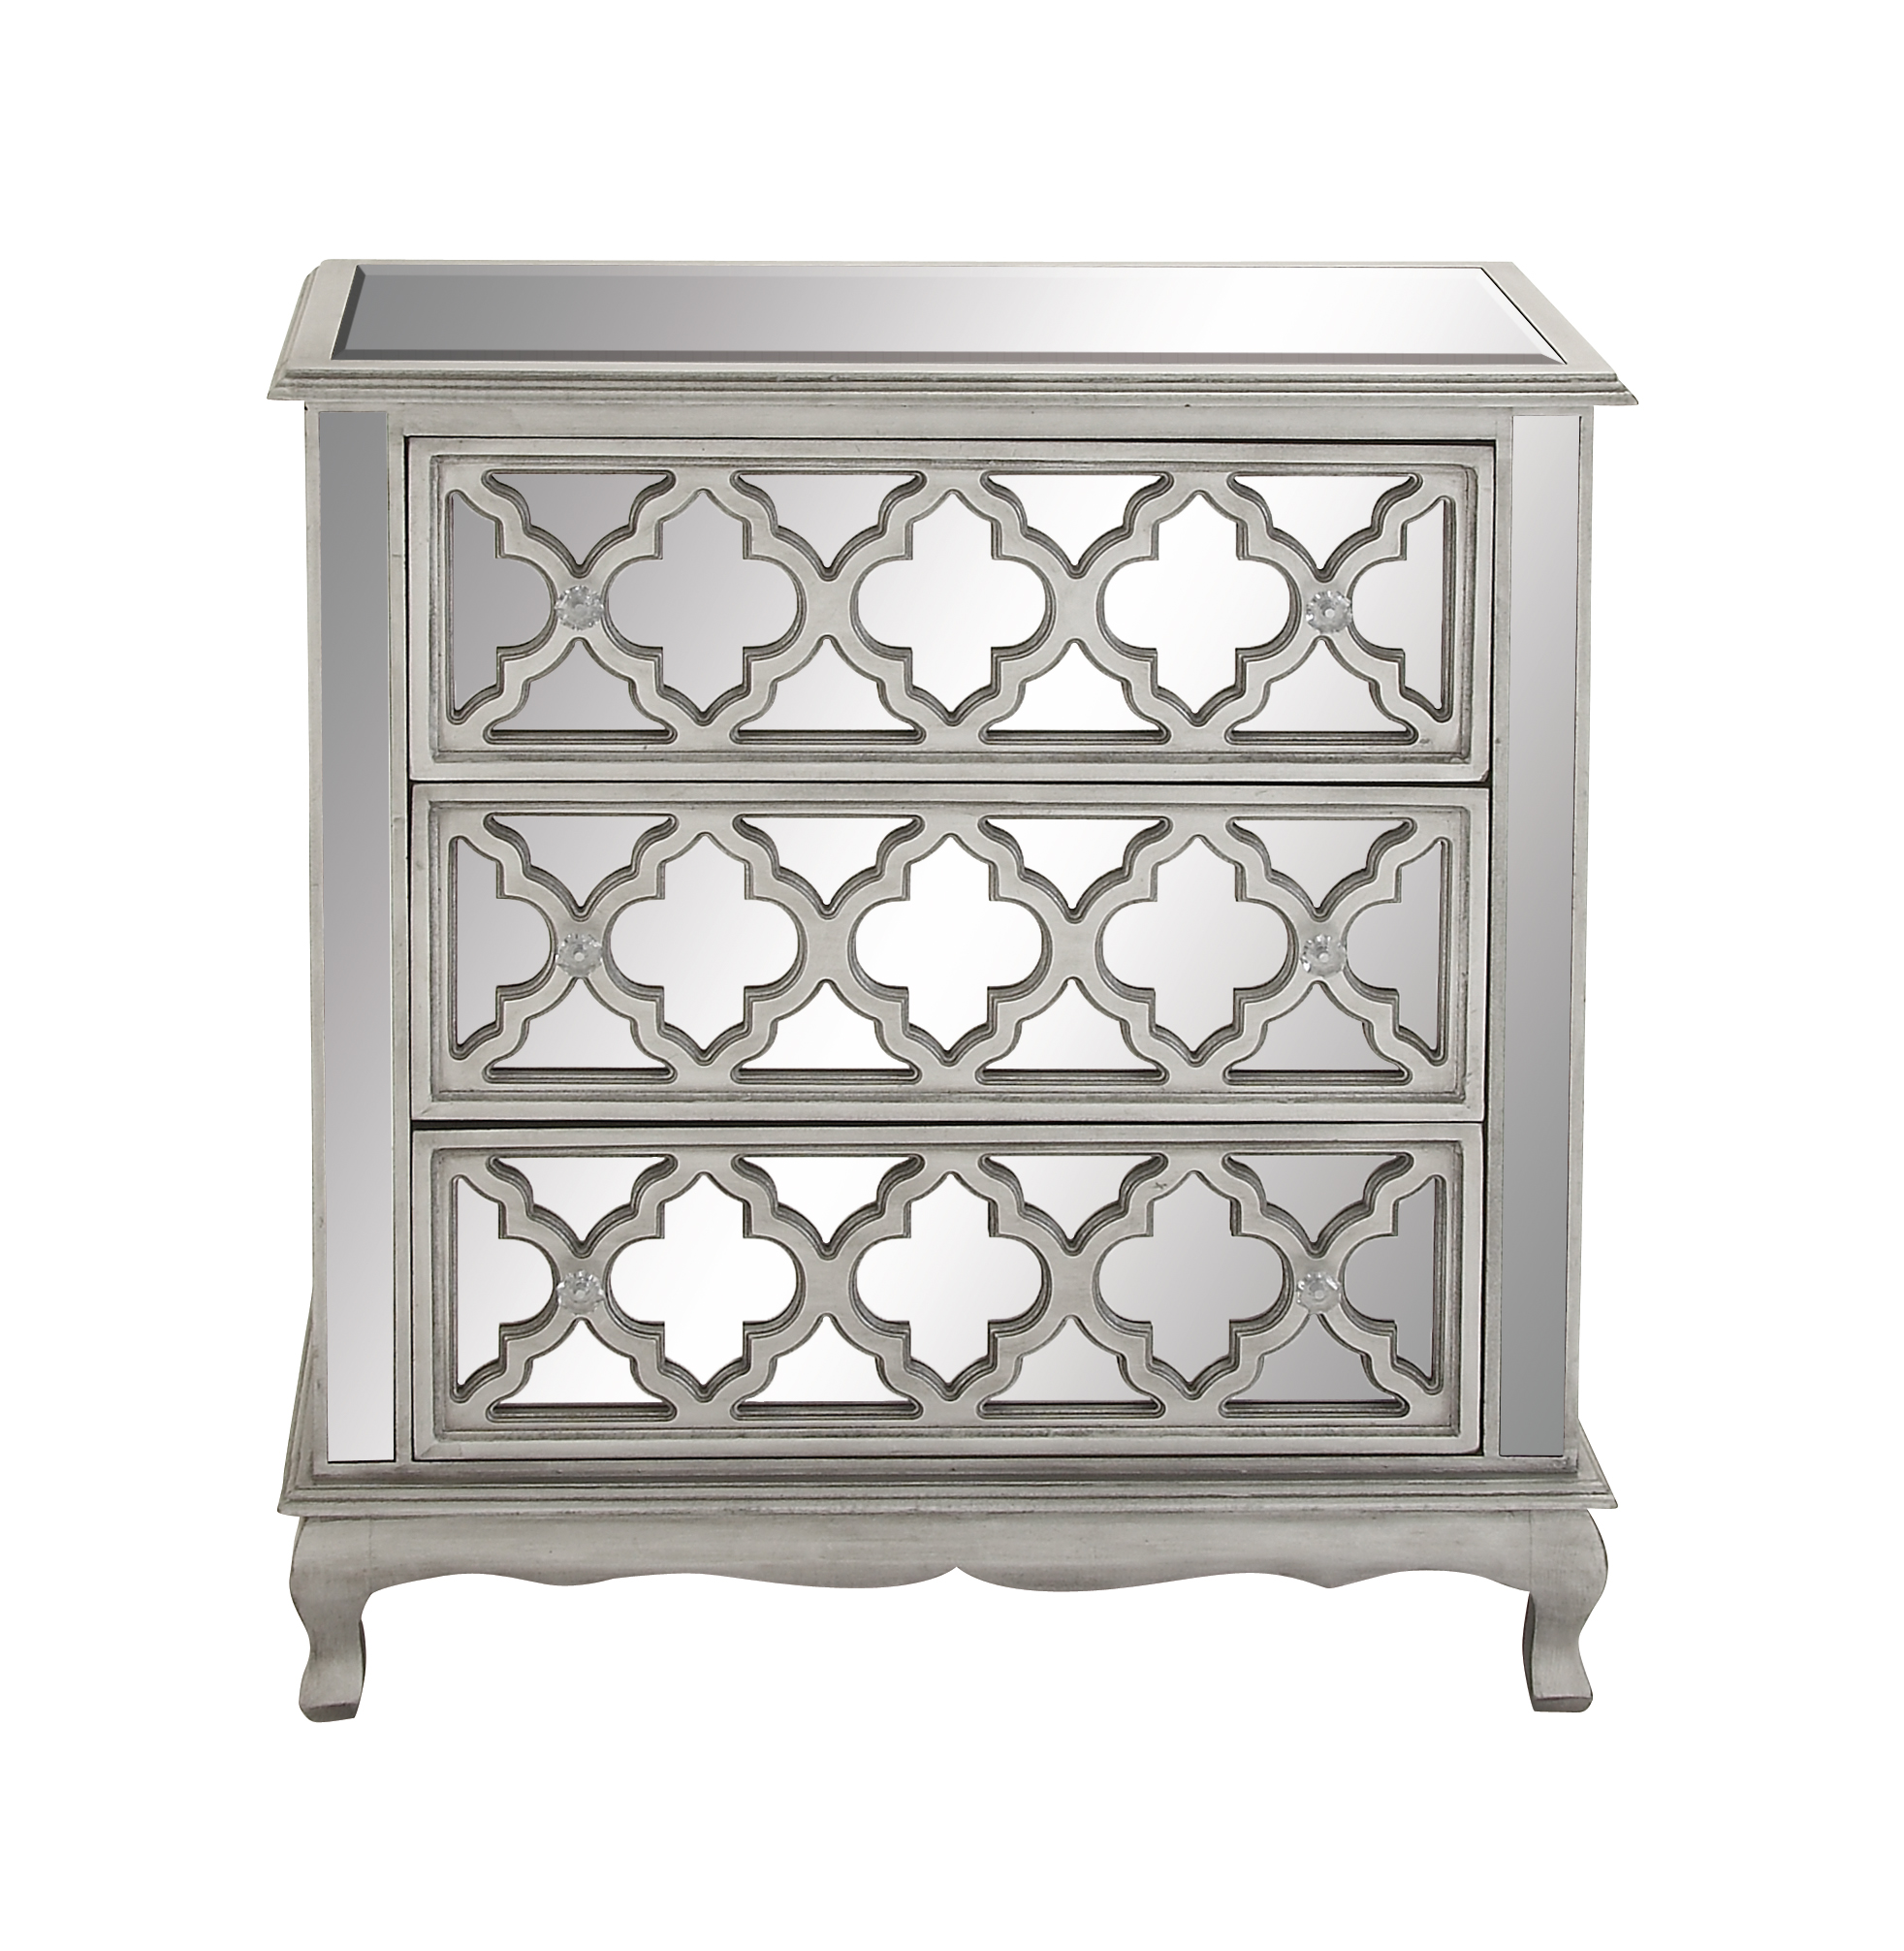 Decmode Contemporary Small 3-Drawer Silver Wood & Mirrored Cabinet w/ Crystal Rosette Handles